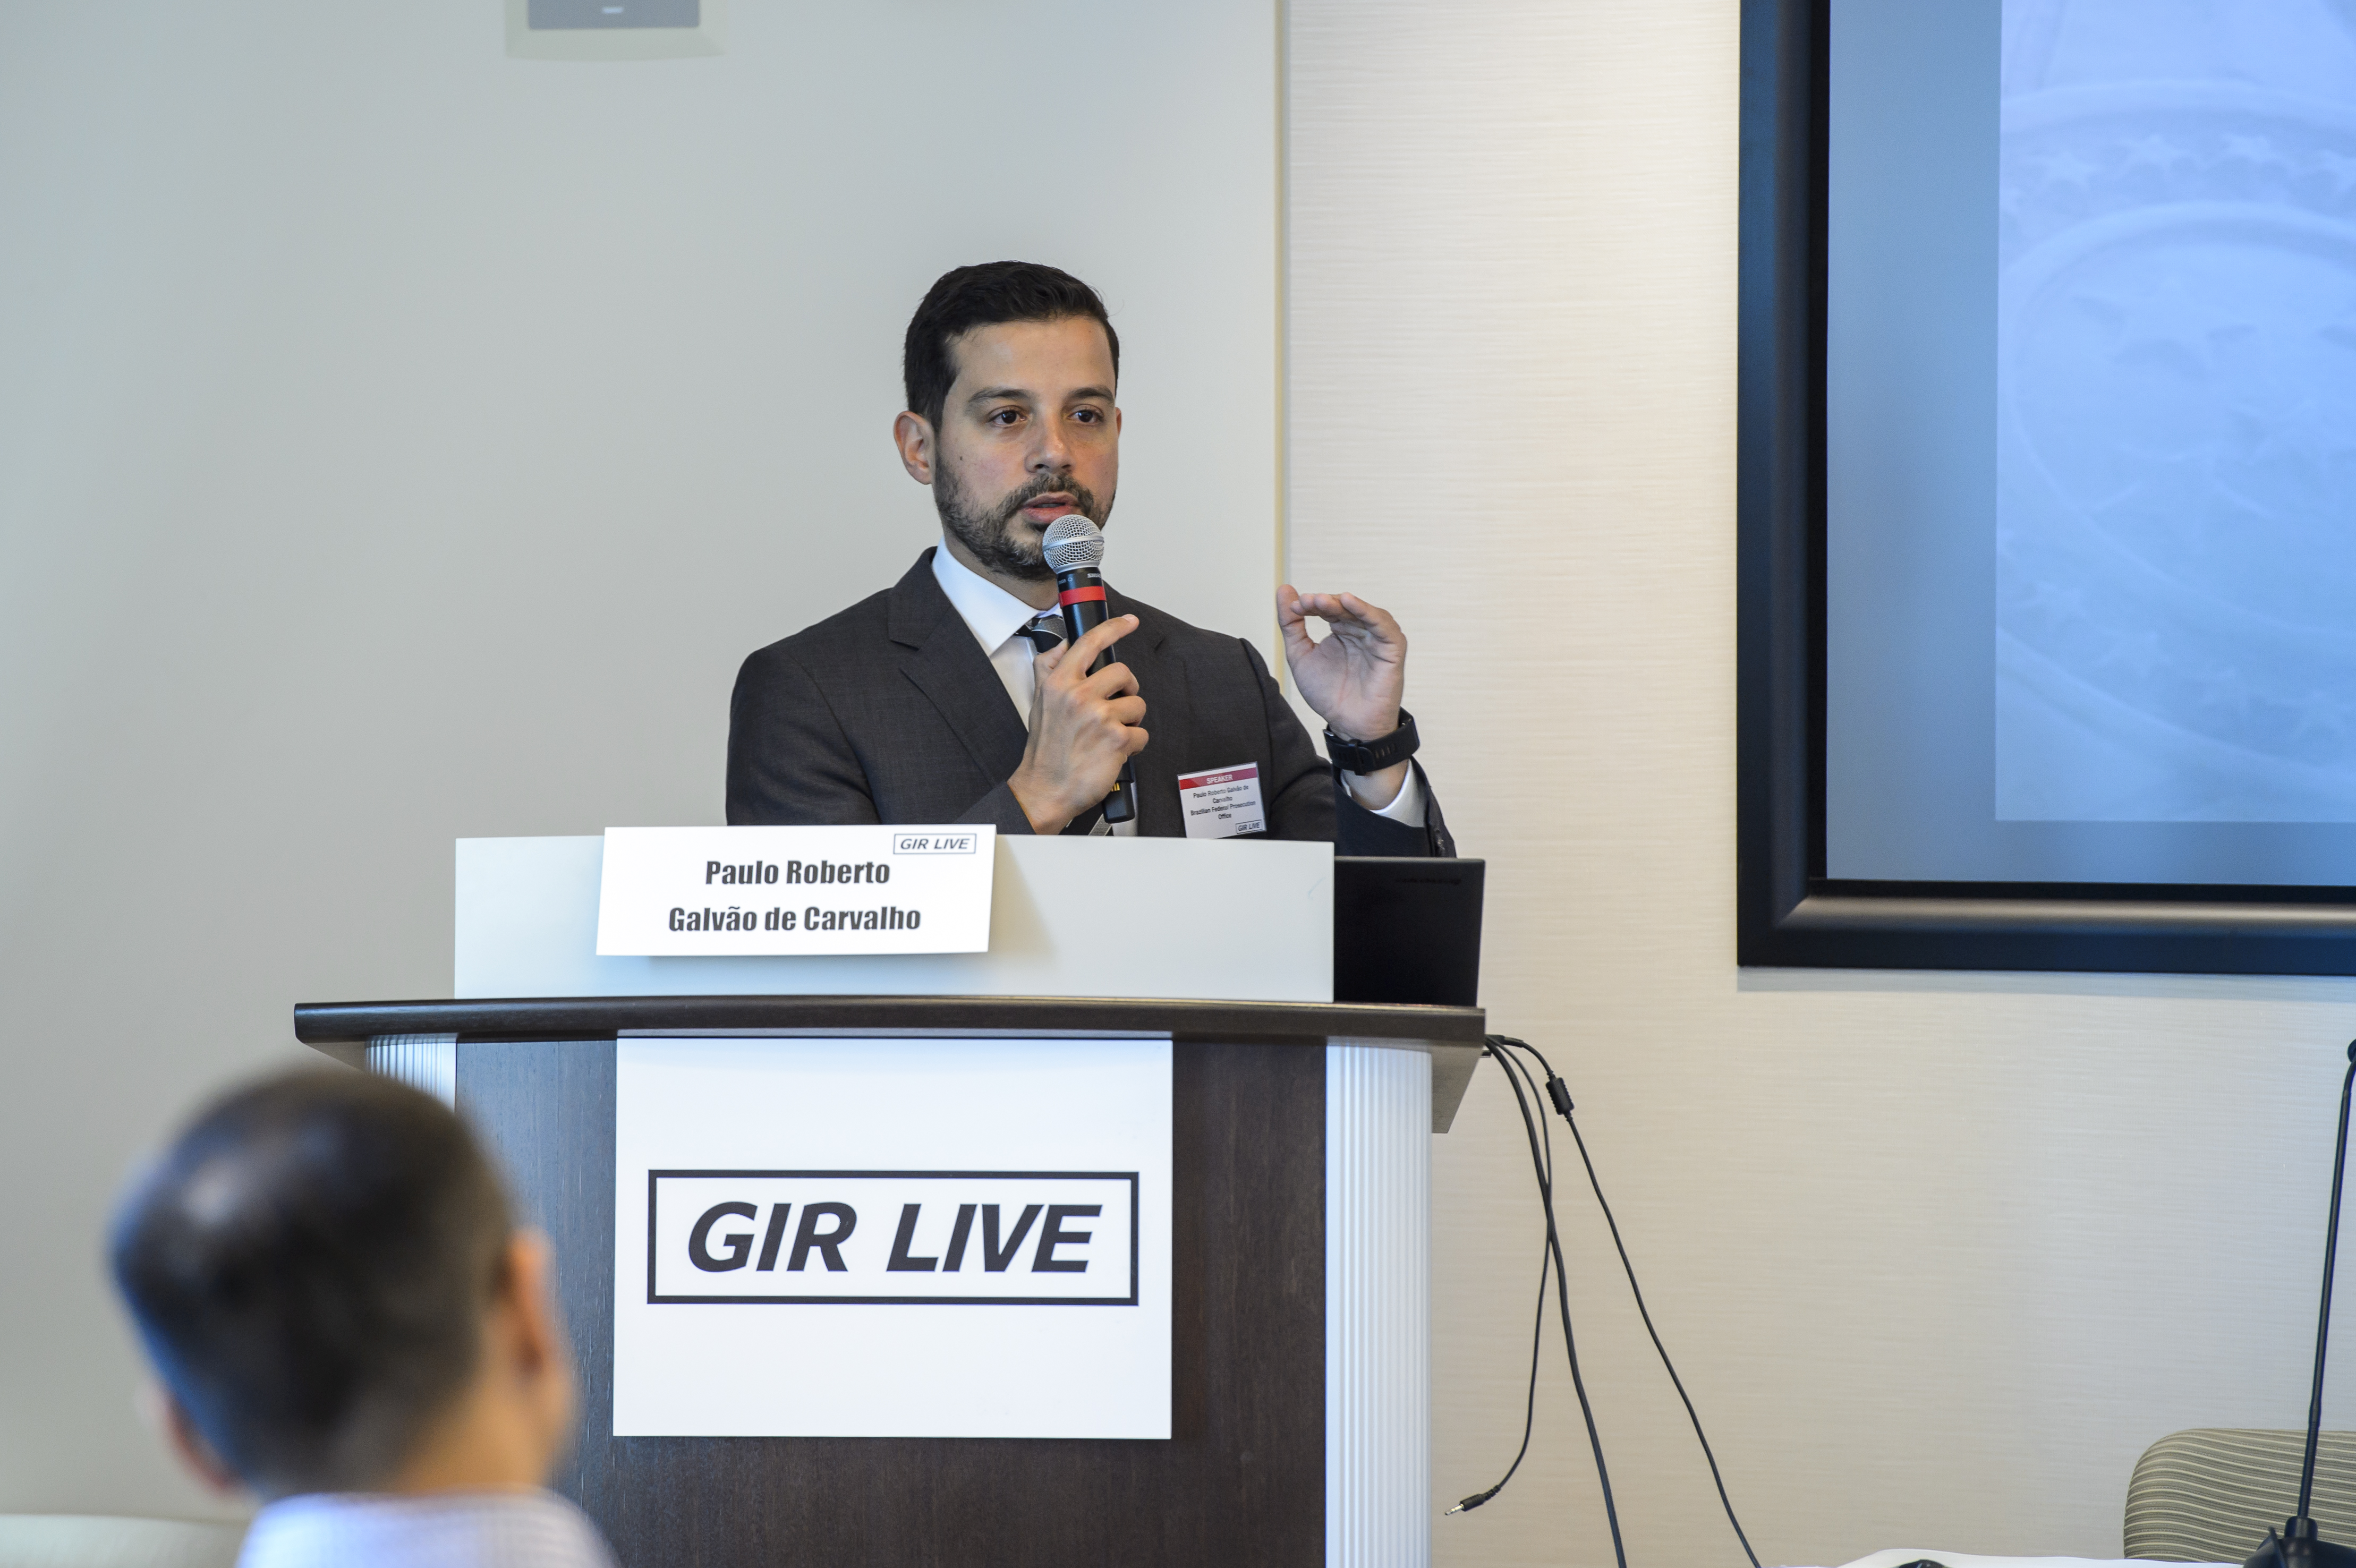 GIR Live: Petrobras prosecutor warns of conflicts of interest at Brazilian government agencies